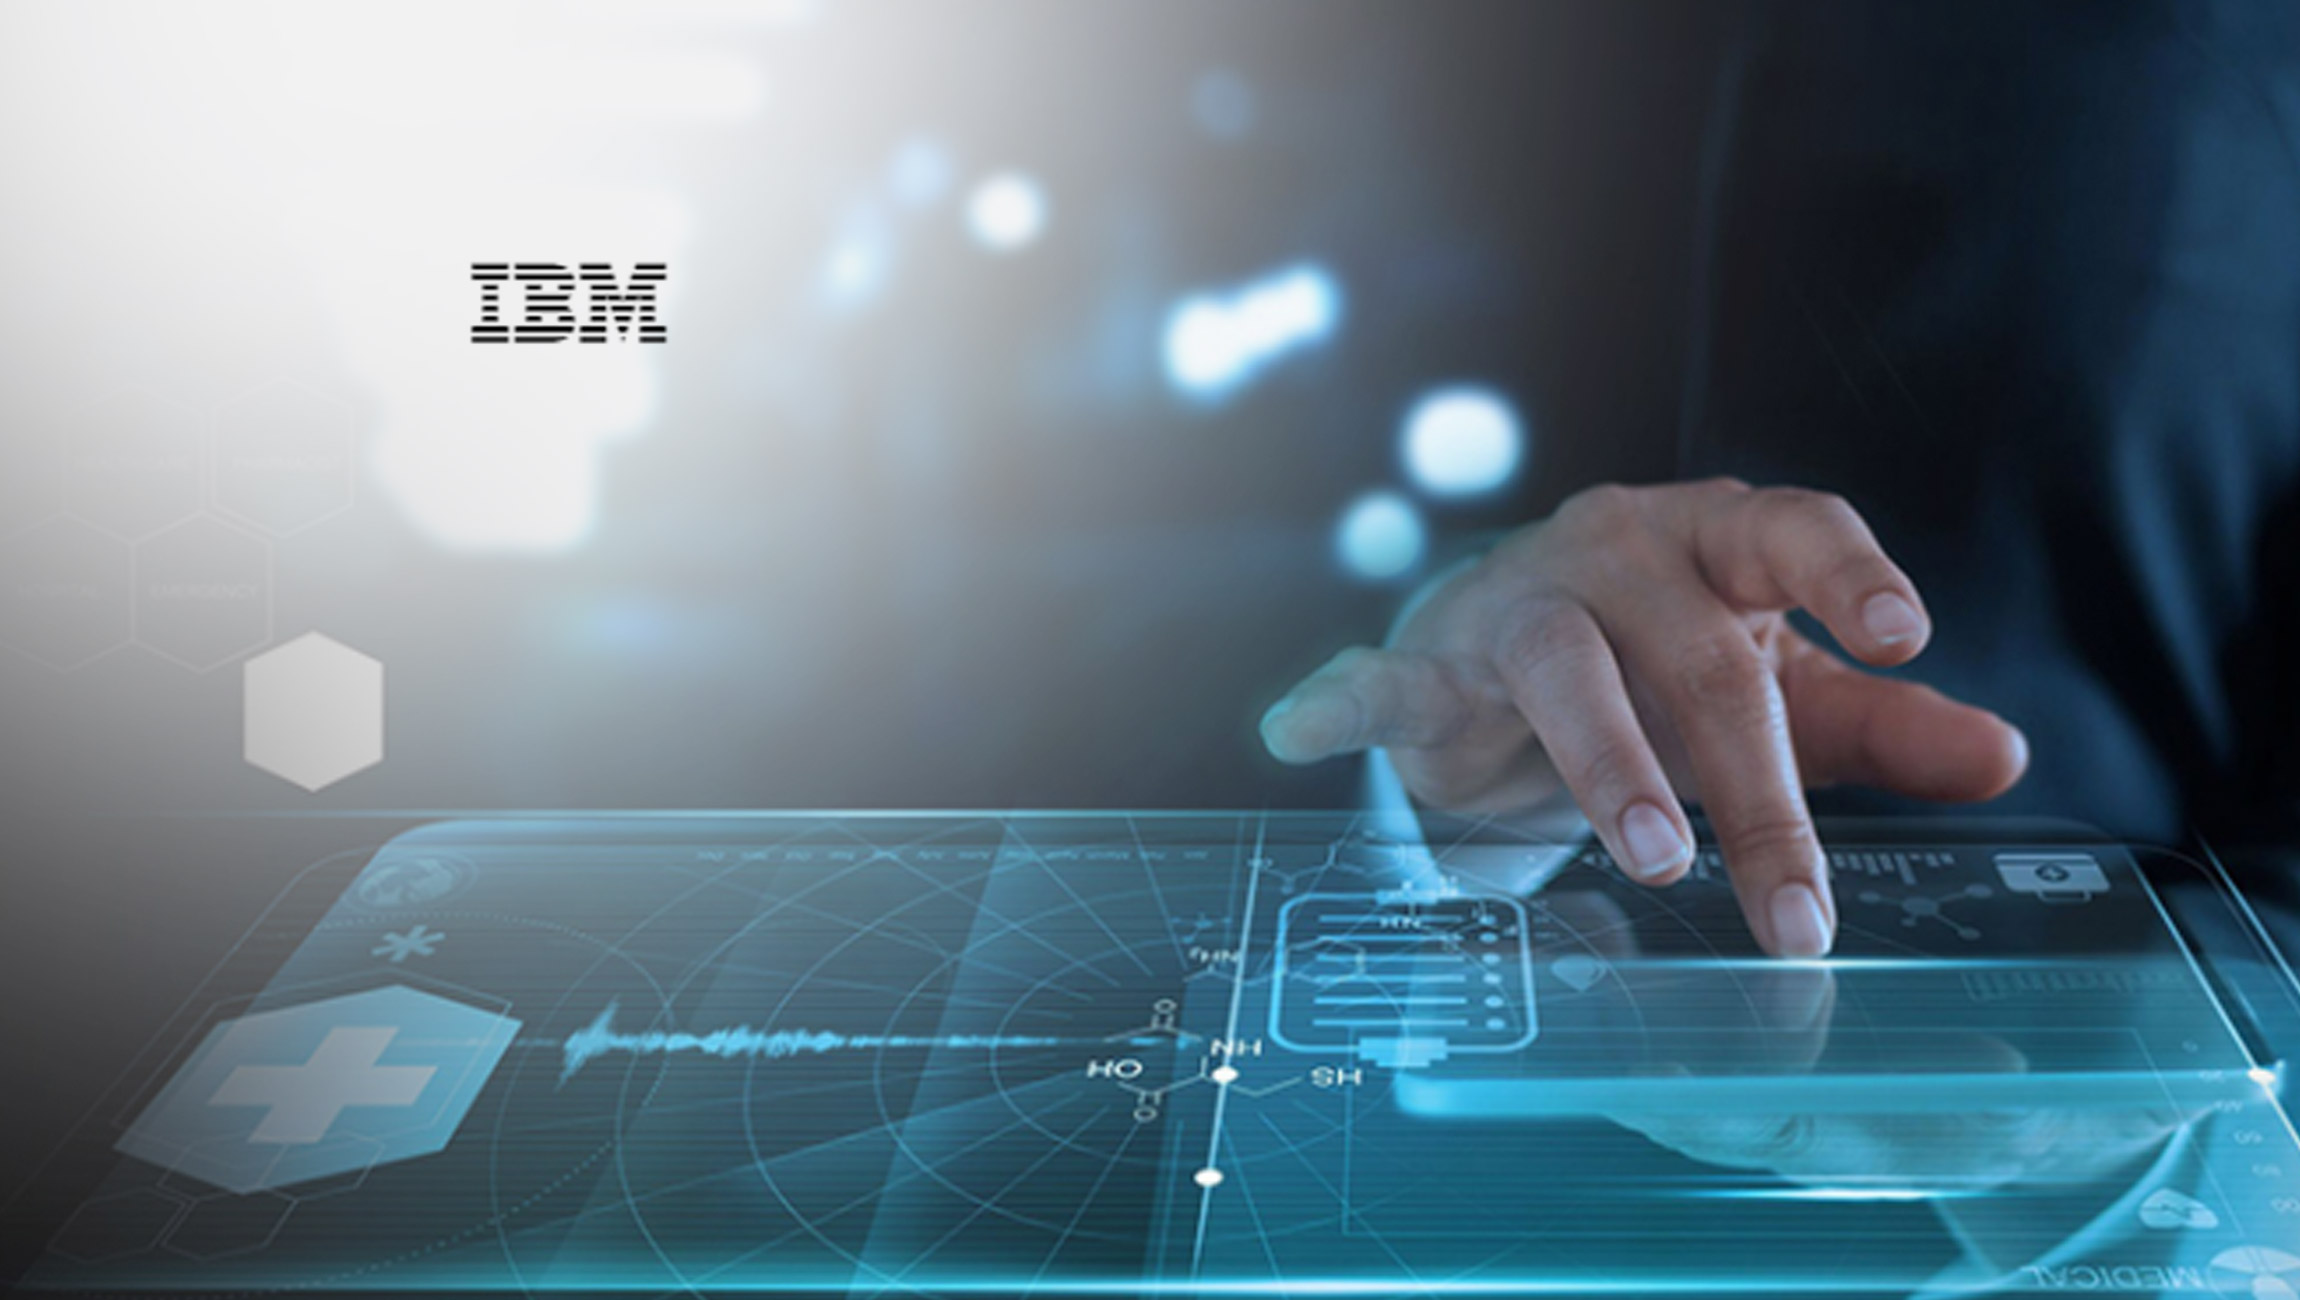 IBM Advances Hybrid Cloud Software with New Data and Automation Capabilities to Help Companies Speed Digital Transformations